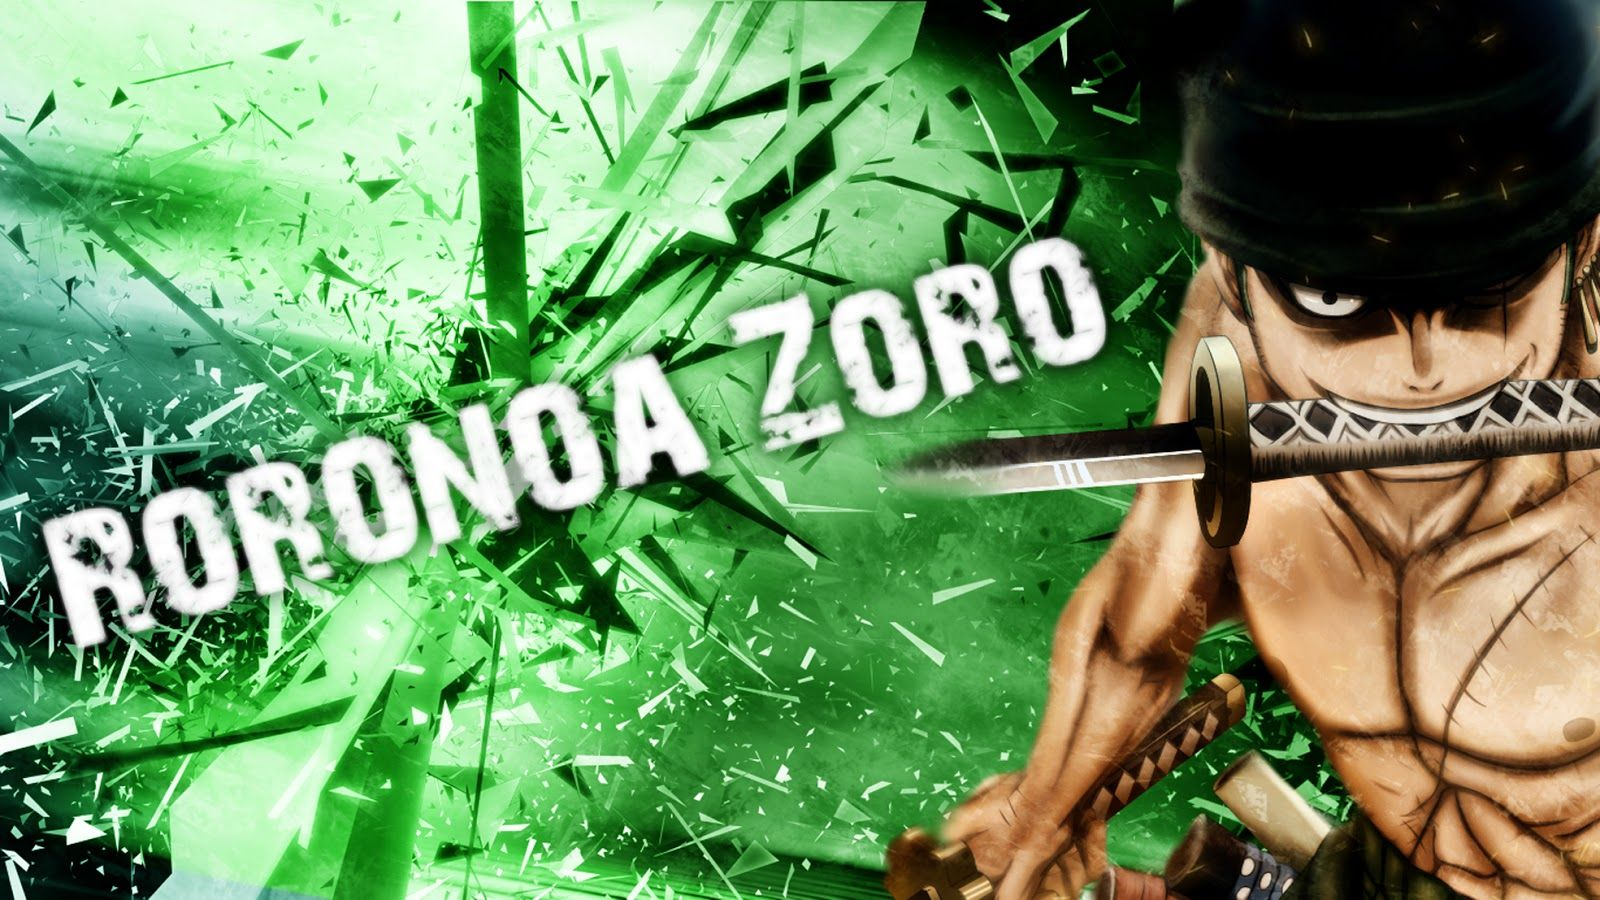 1600x900 Zoro Wallpaper For Desktop Wallpaper | WallpaperLepi